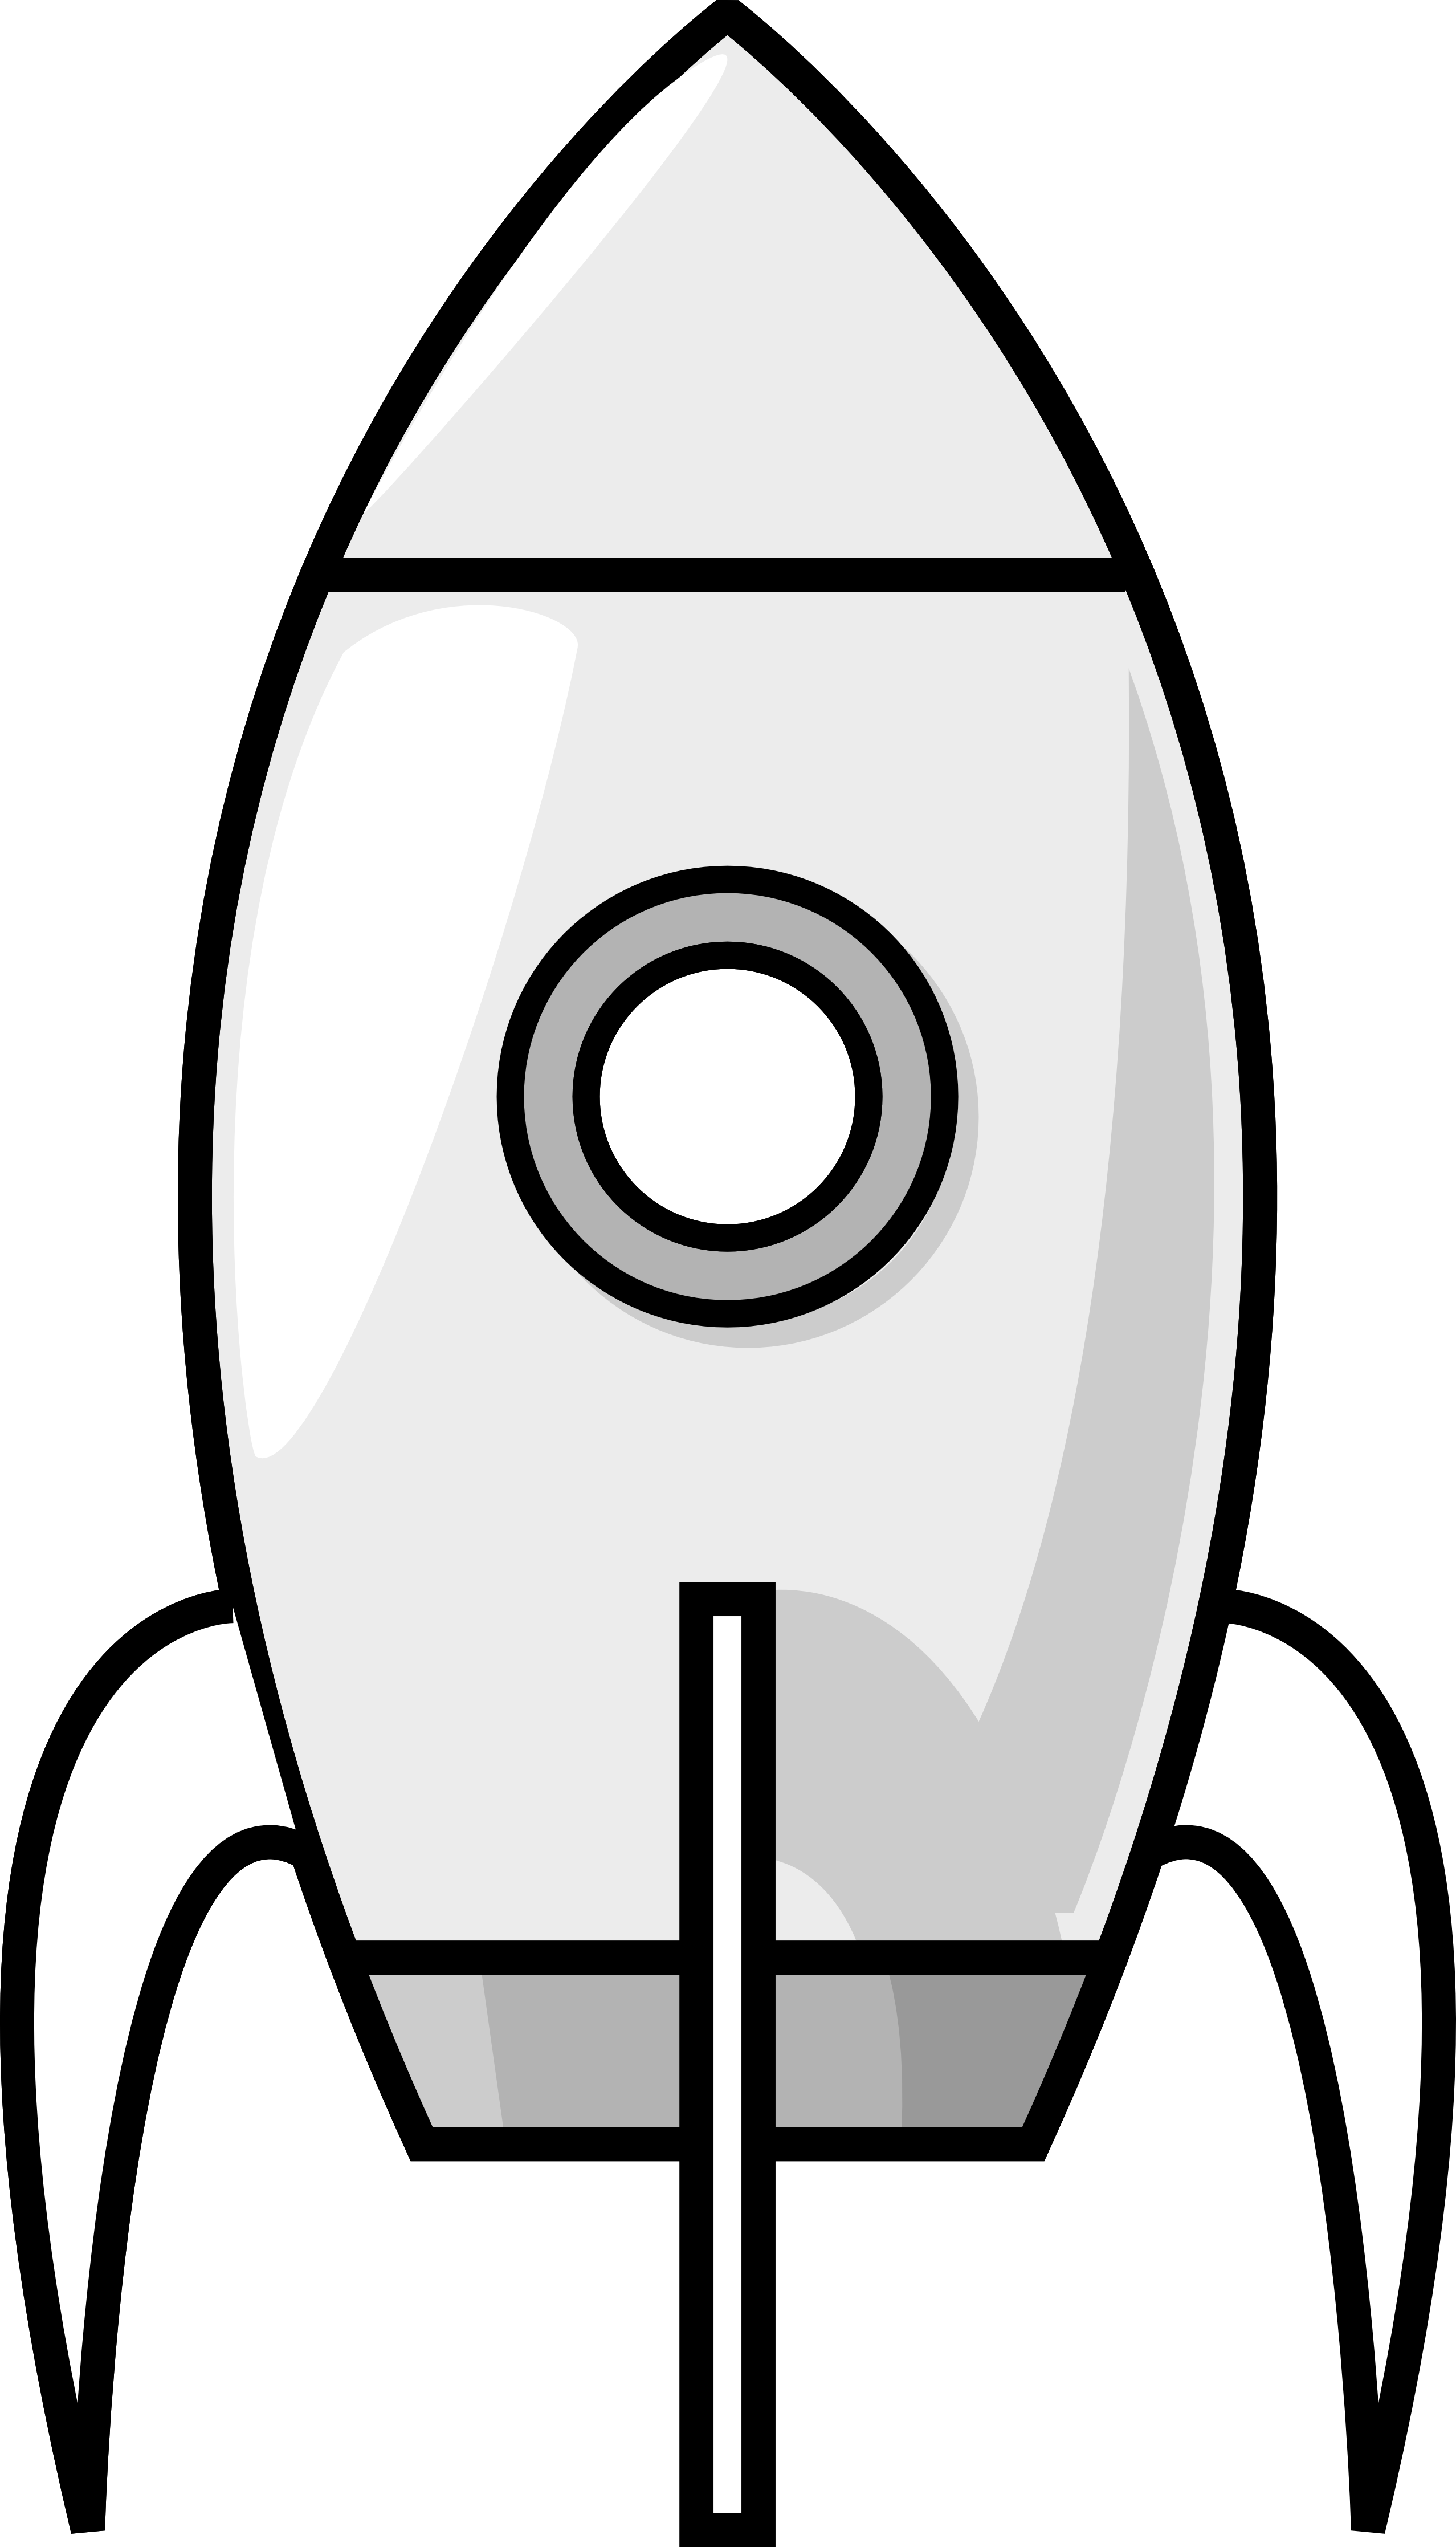 Rocket Clipart Black And White Clipart Panda Free Clipart.